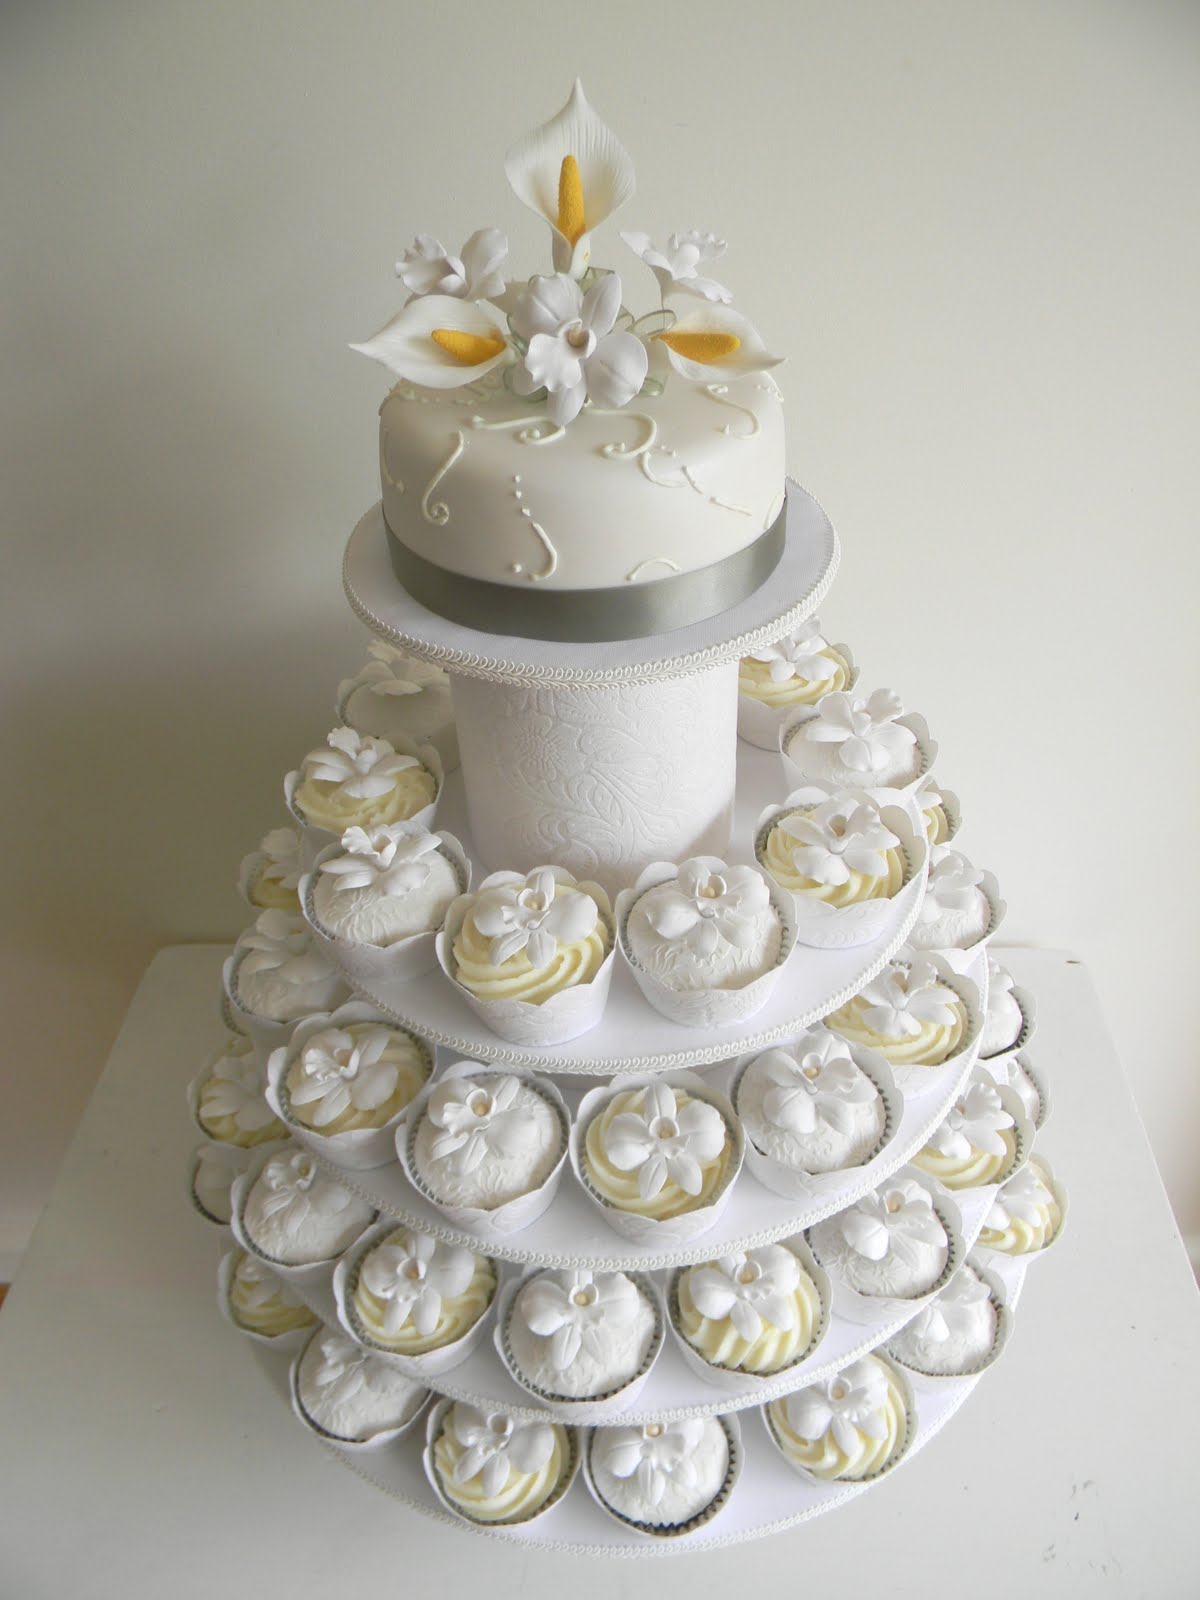 Cake Design Ideas For Wedding : Just call me Martha: April 2011